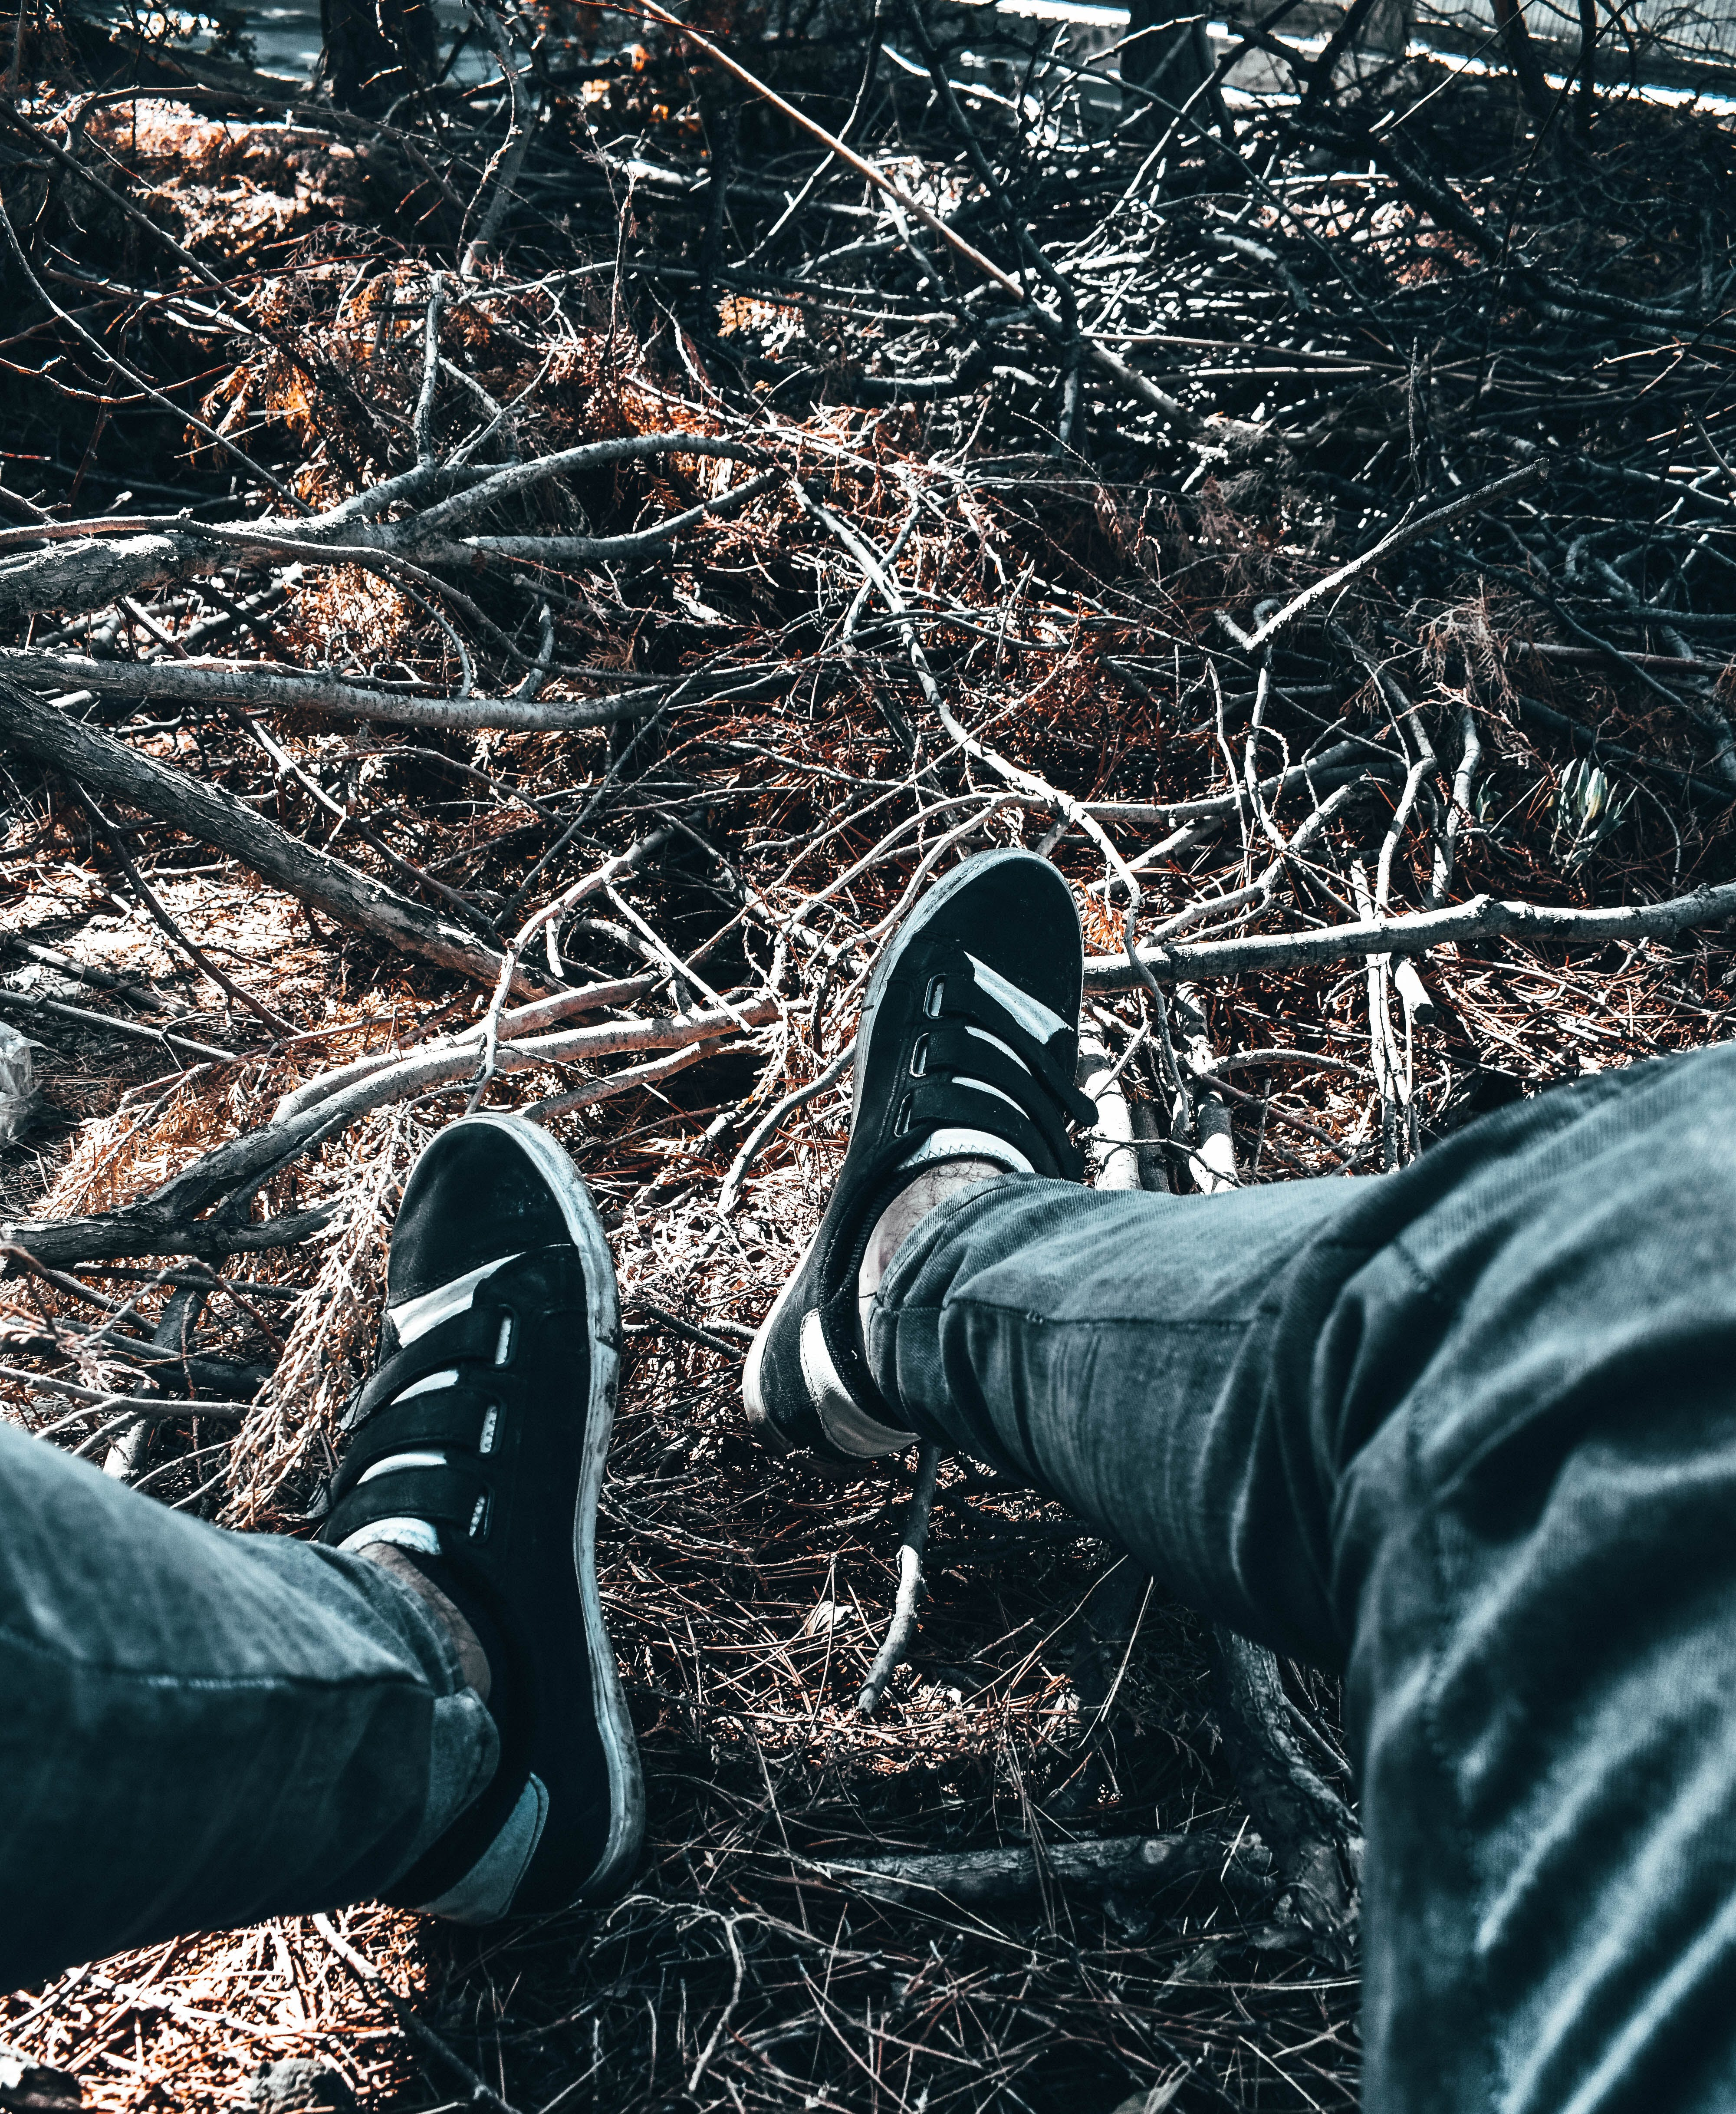 Person Feet on Twigs